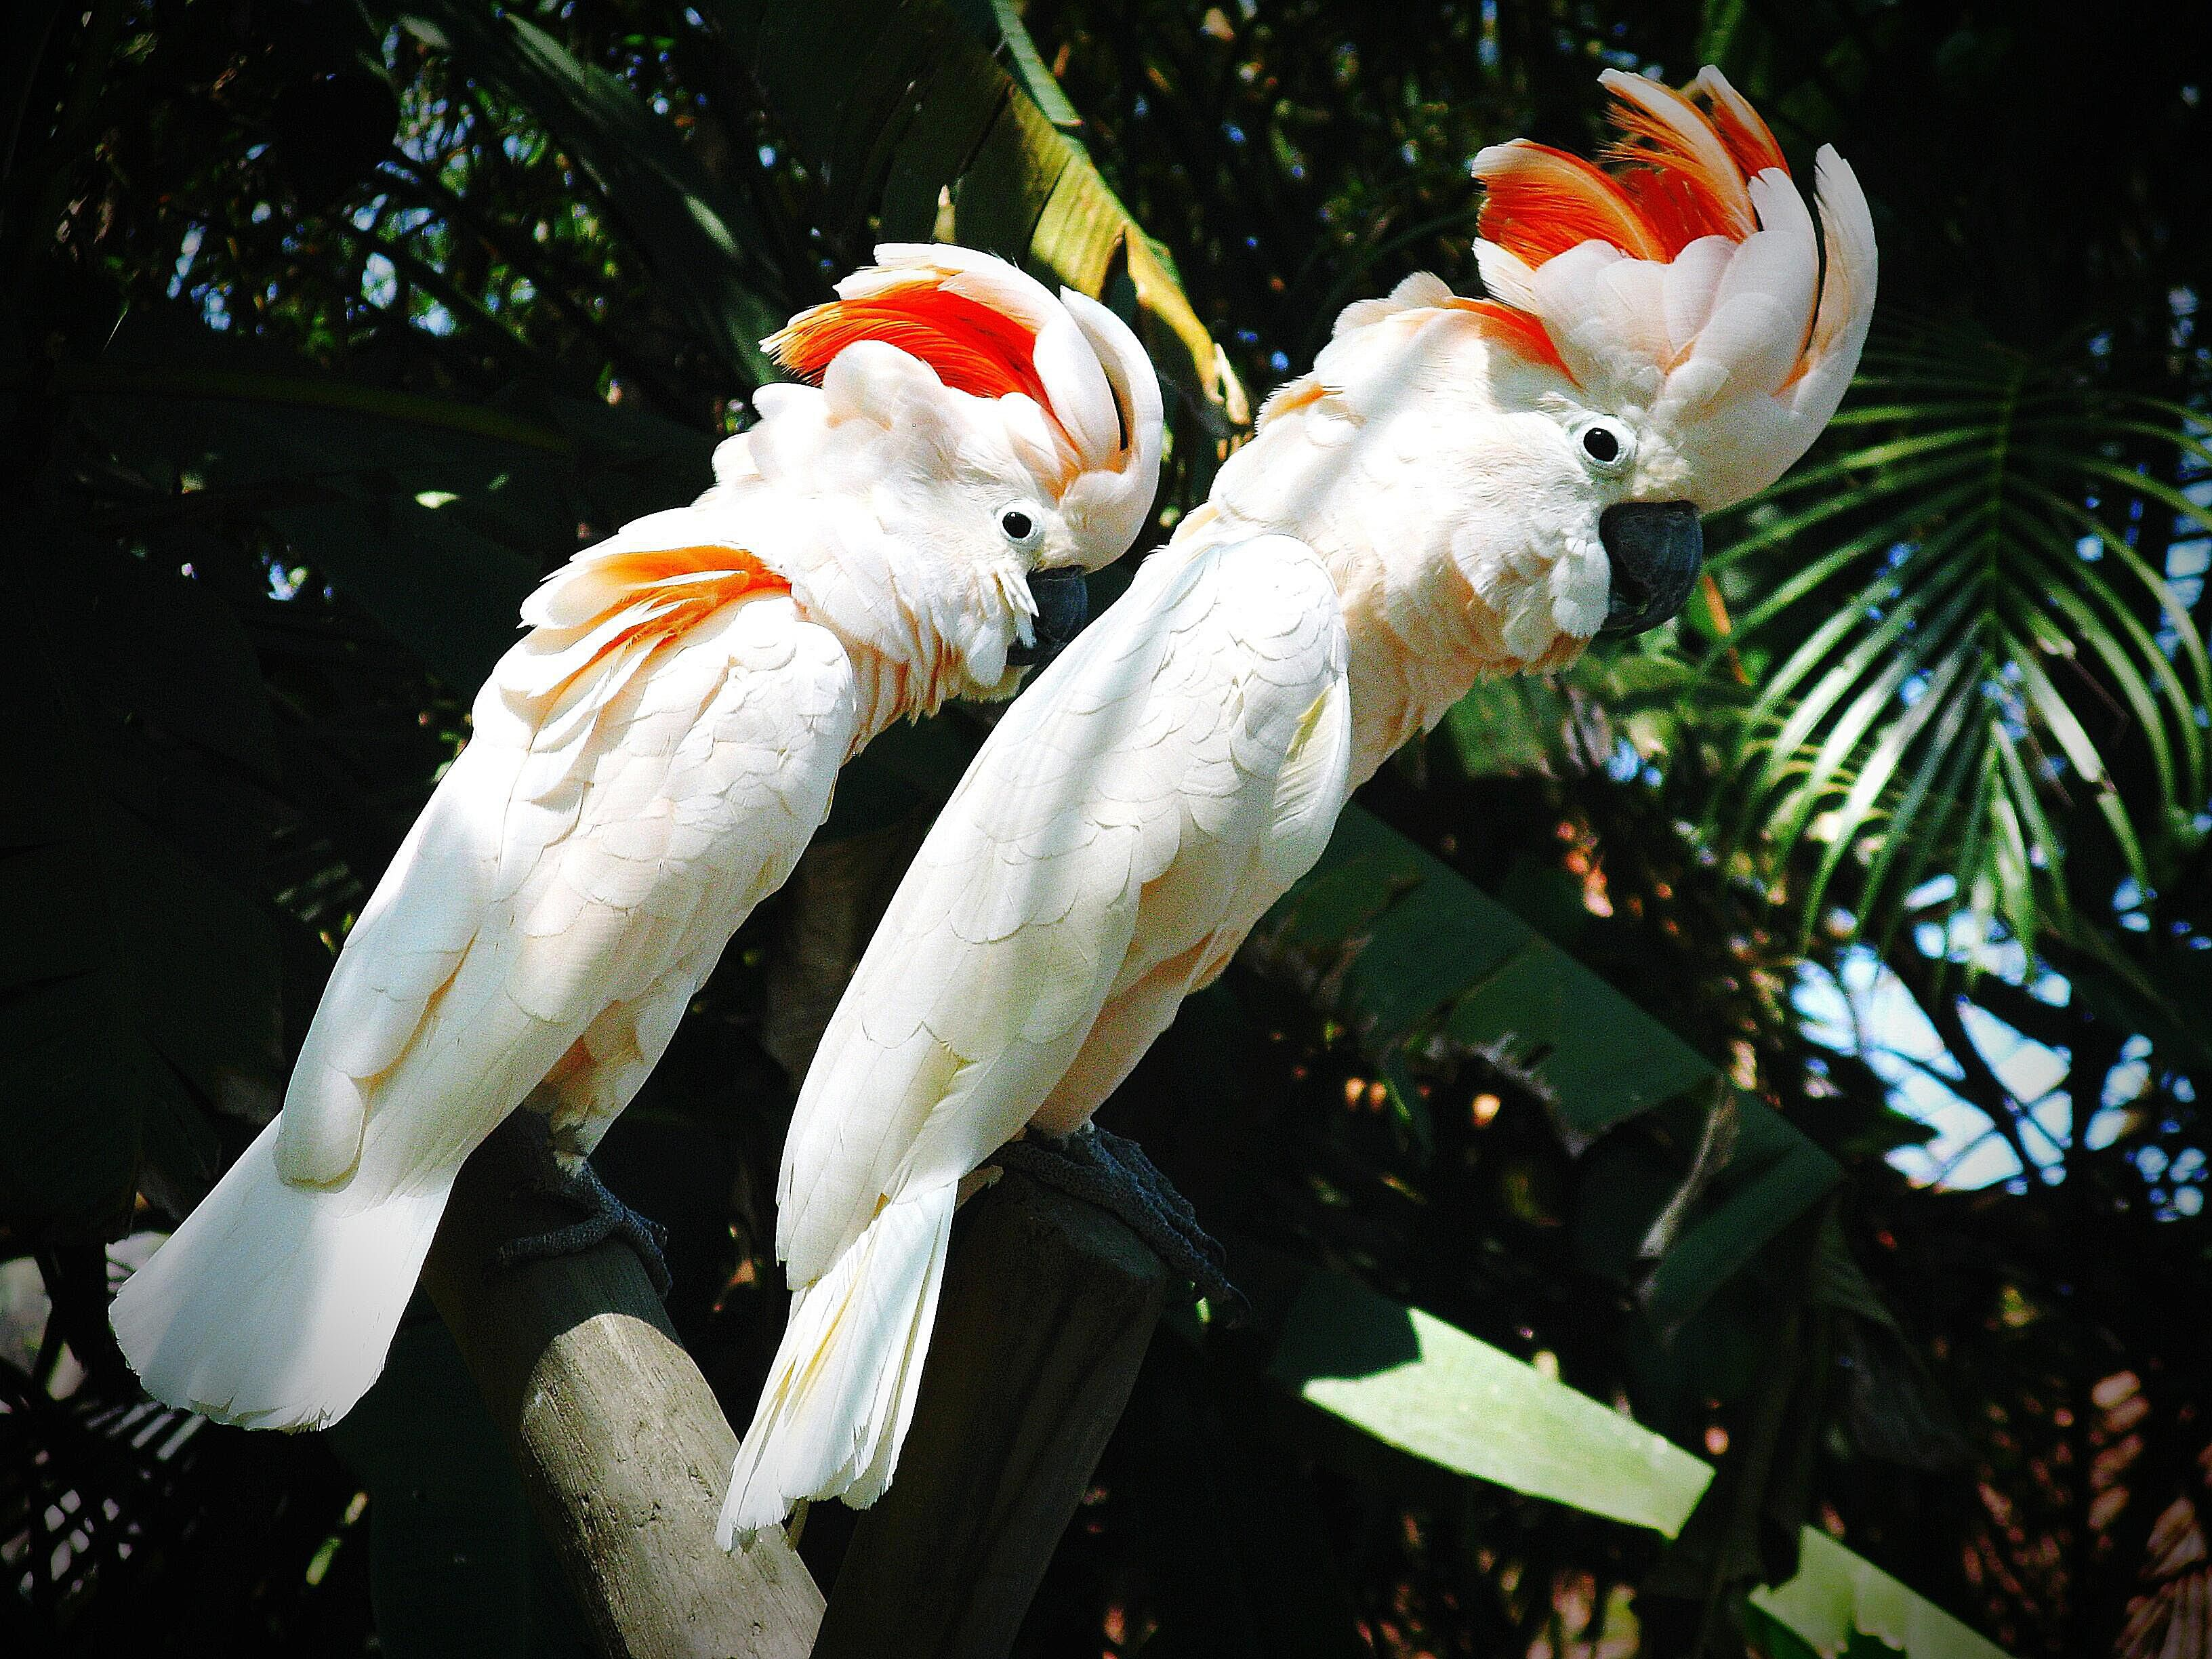 Moluccan cockatoo pair perching in a tree